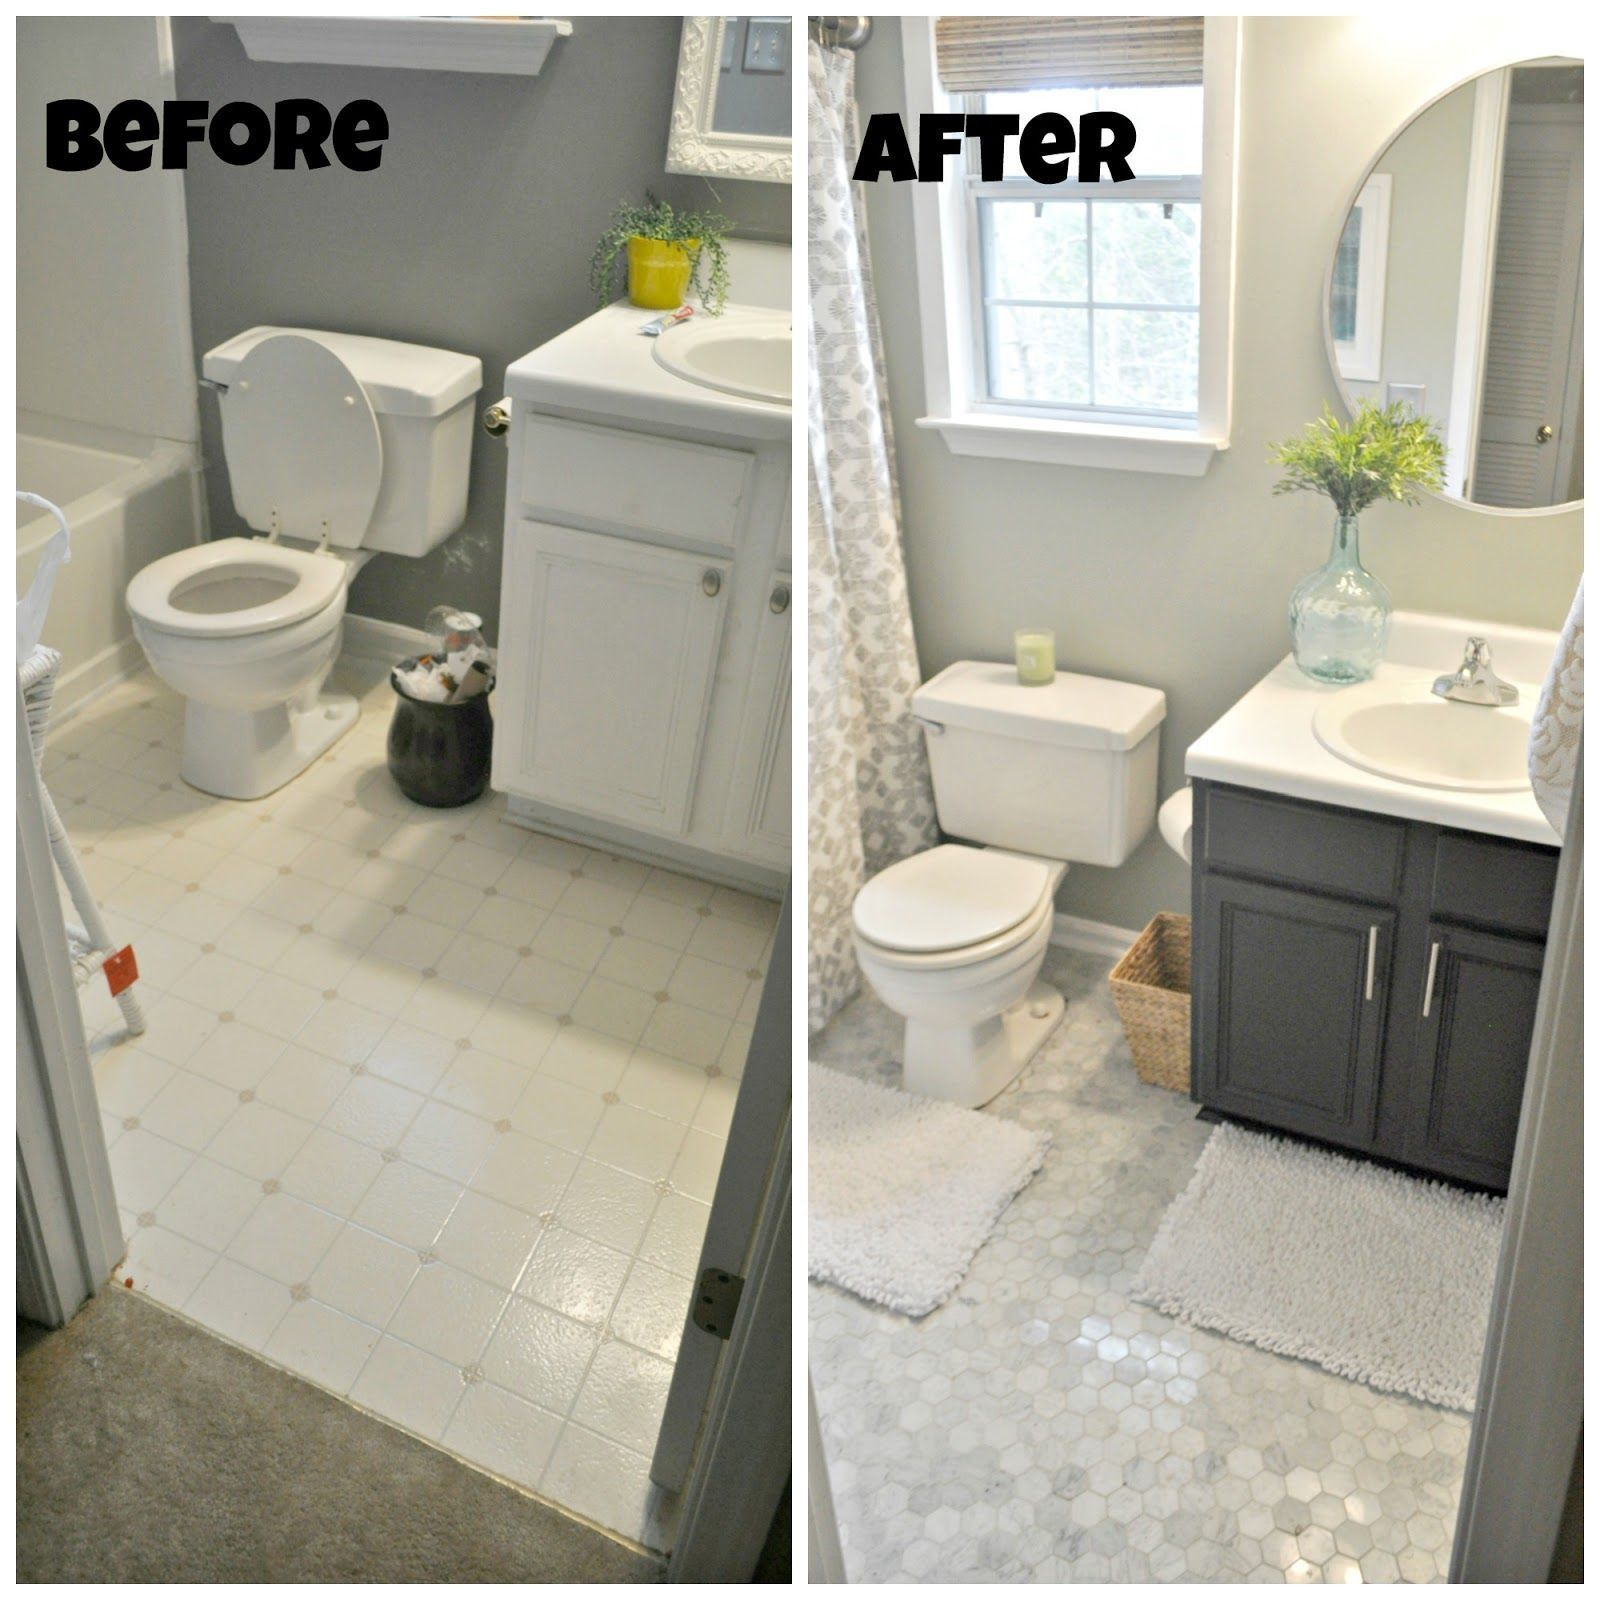 46 Simple Guest Bathroom Makeover Ideas On A Budget Probably If You Will Have Some Extra Cash For S Budget Bathroom Remodel Simple Bathroom Bathrooms Remodel